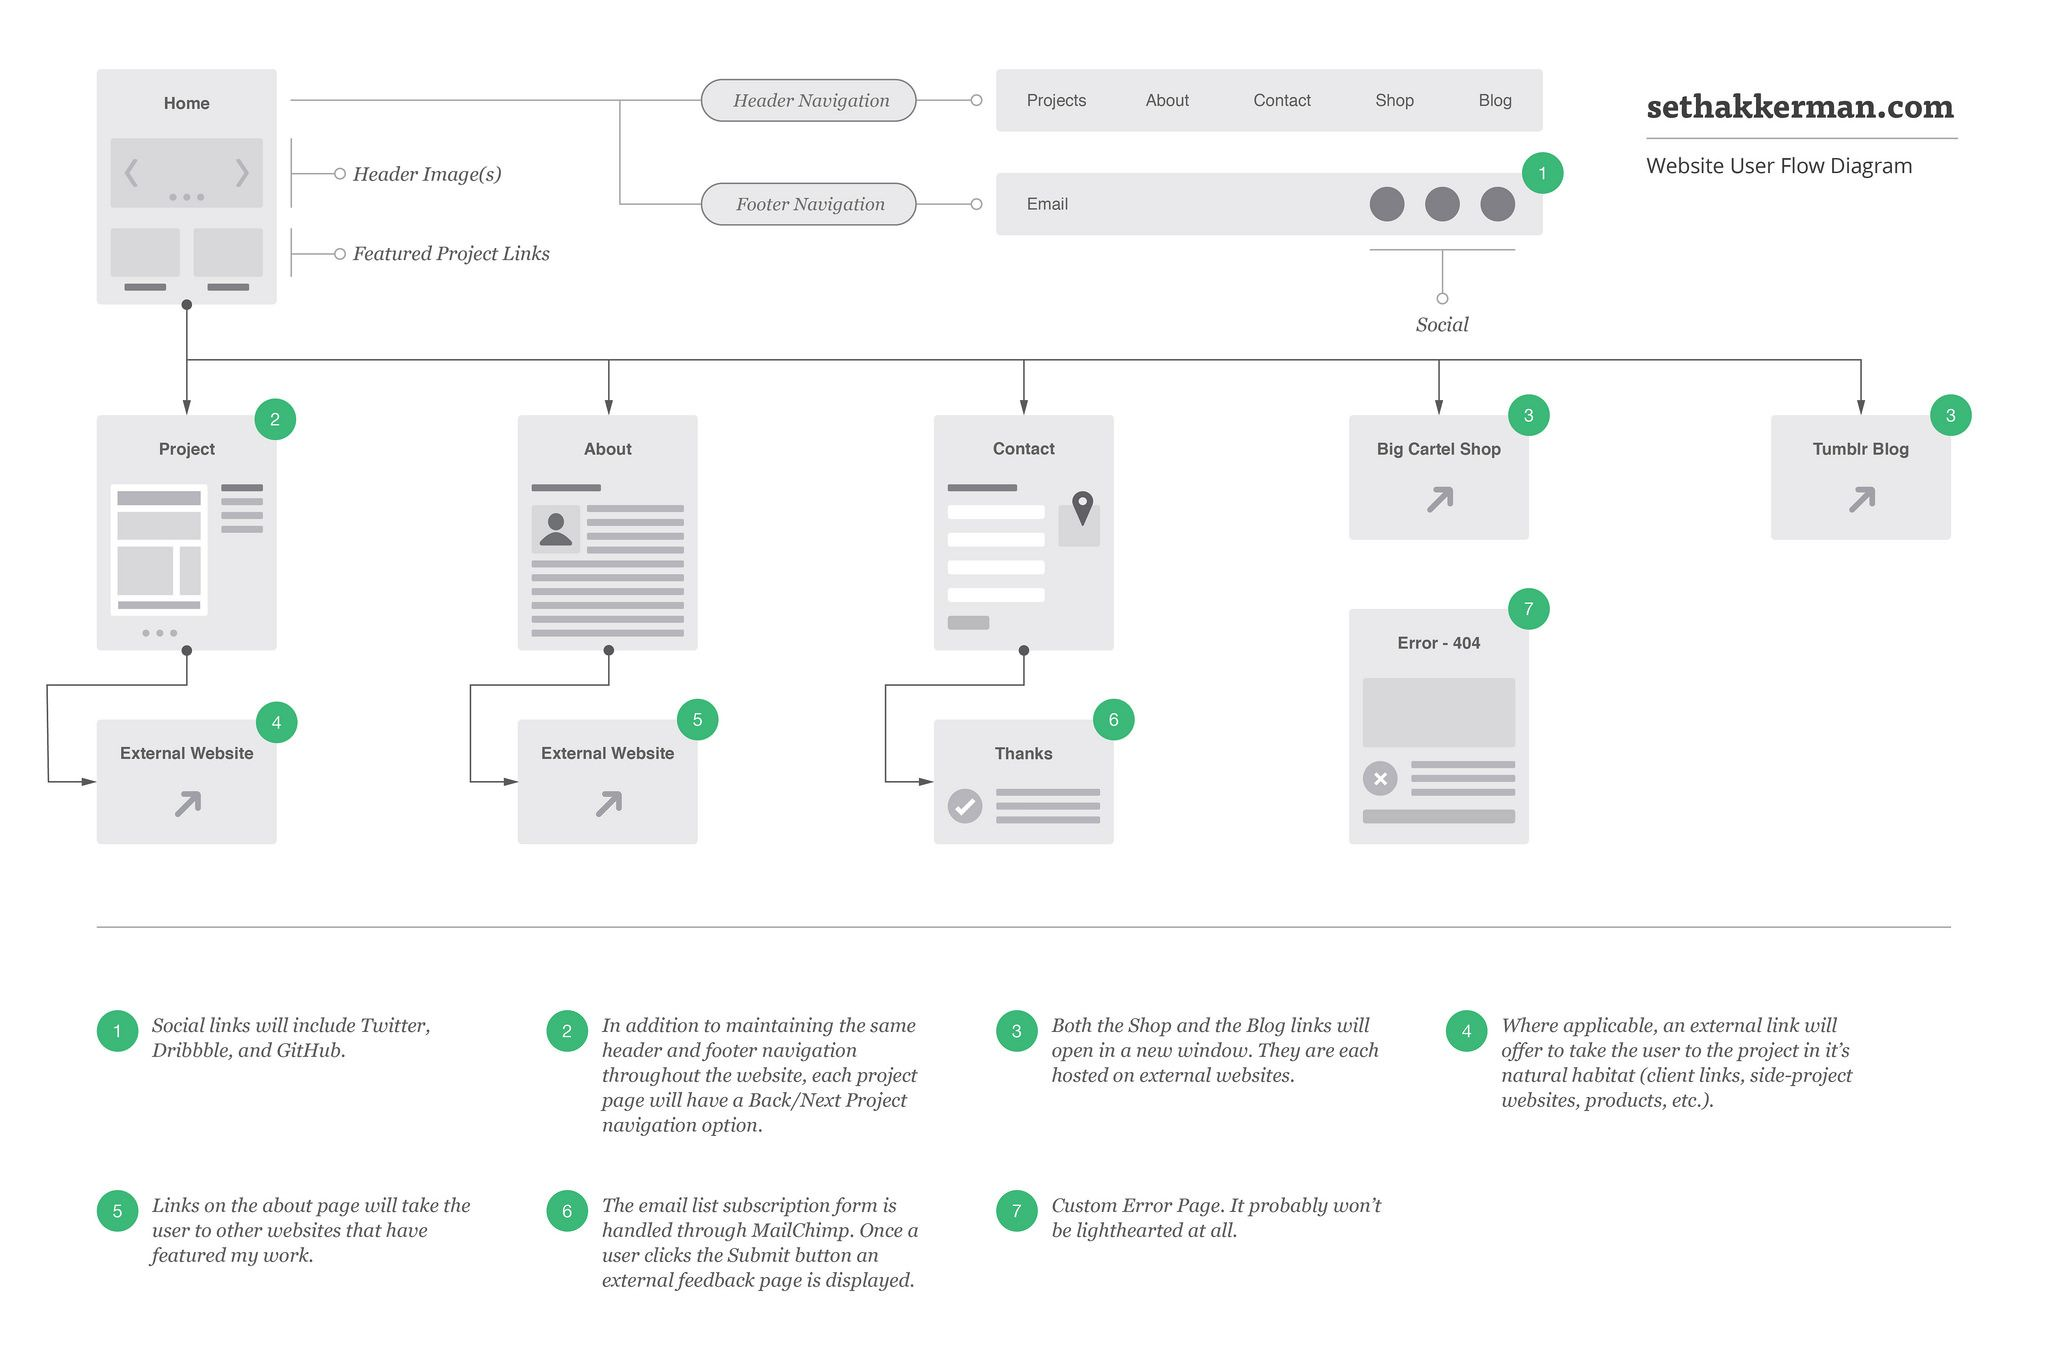 website user flow diagram seth akkerman webdesign rh pinterest com process flow diagram for website development process flow chart for website